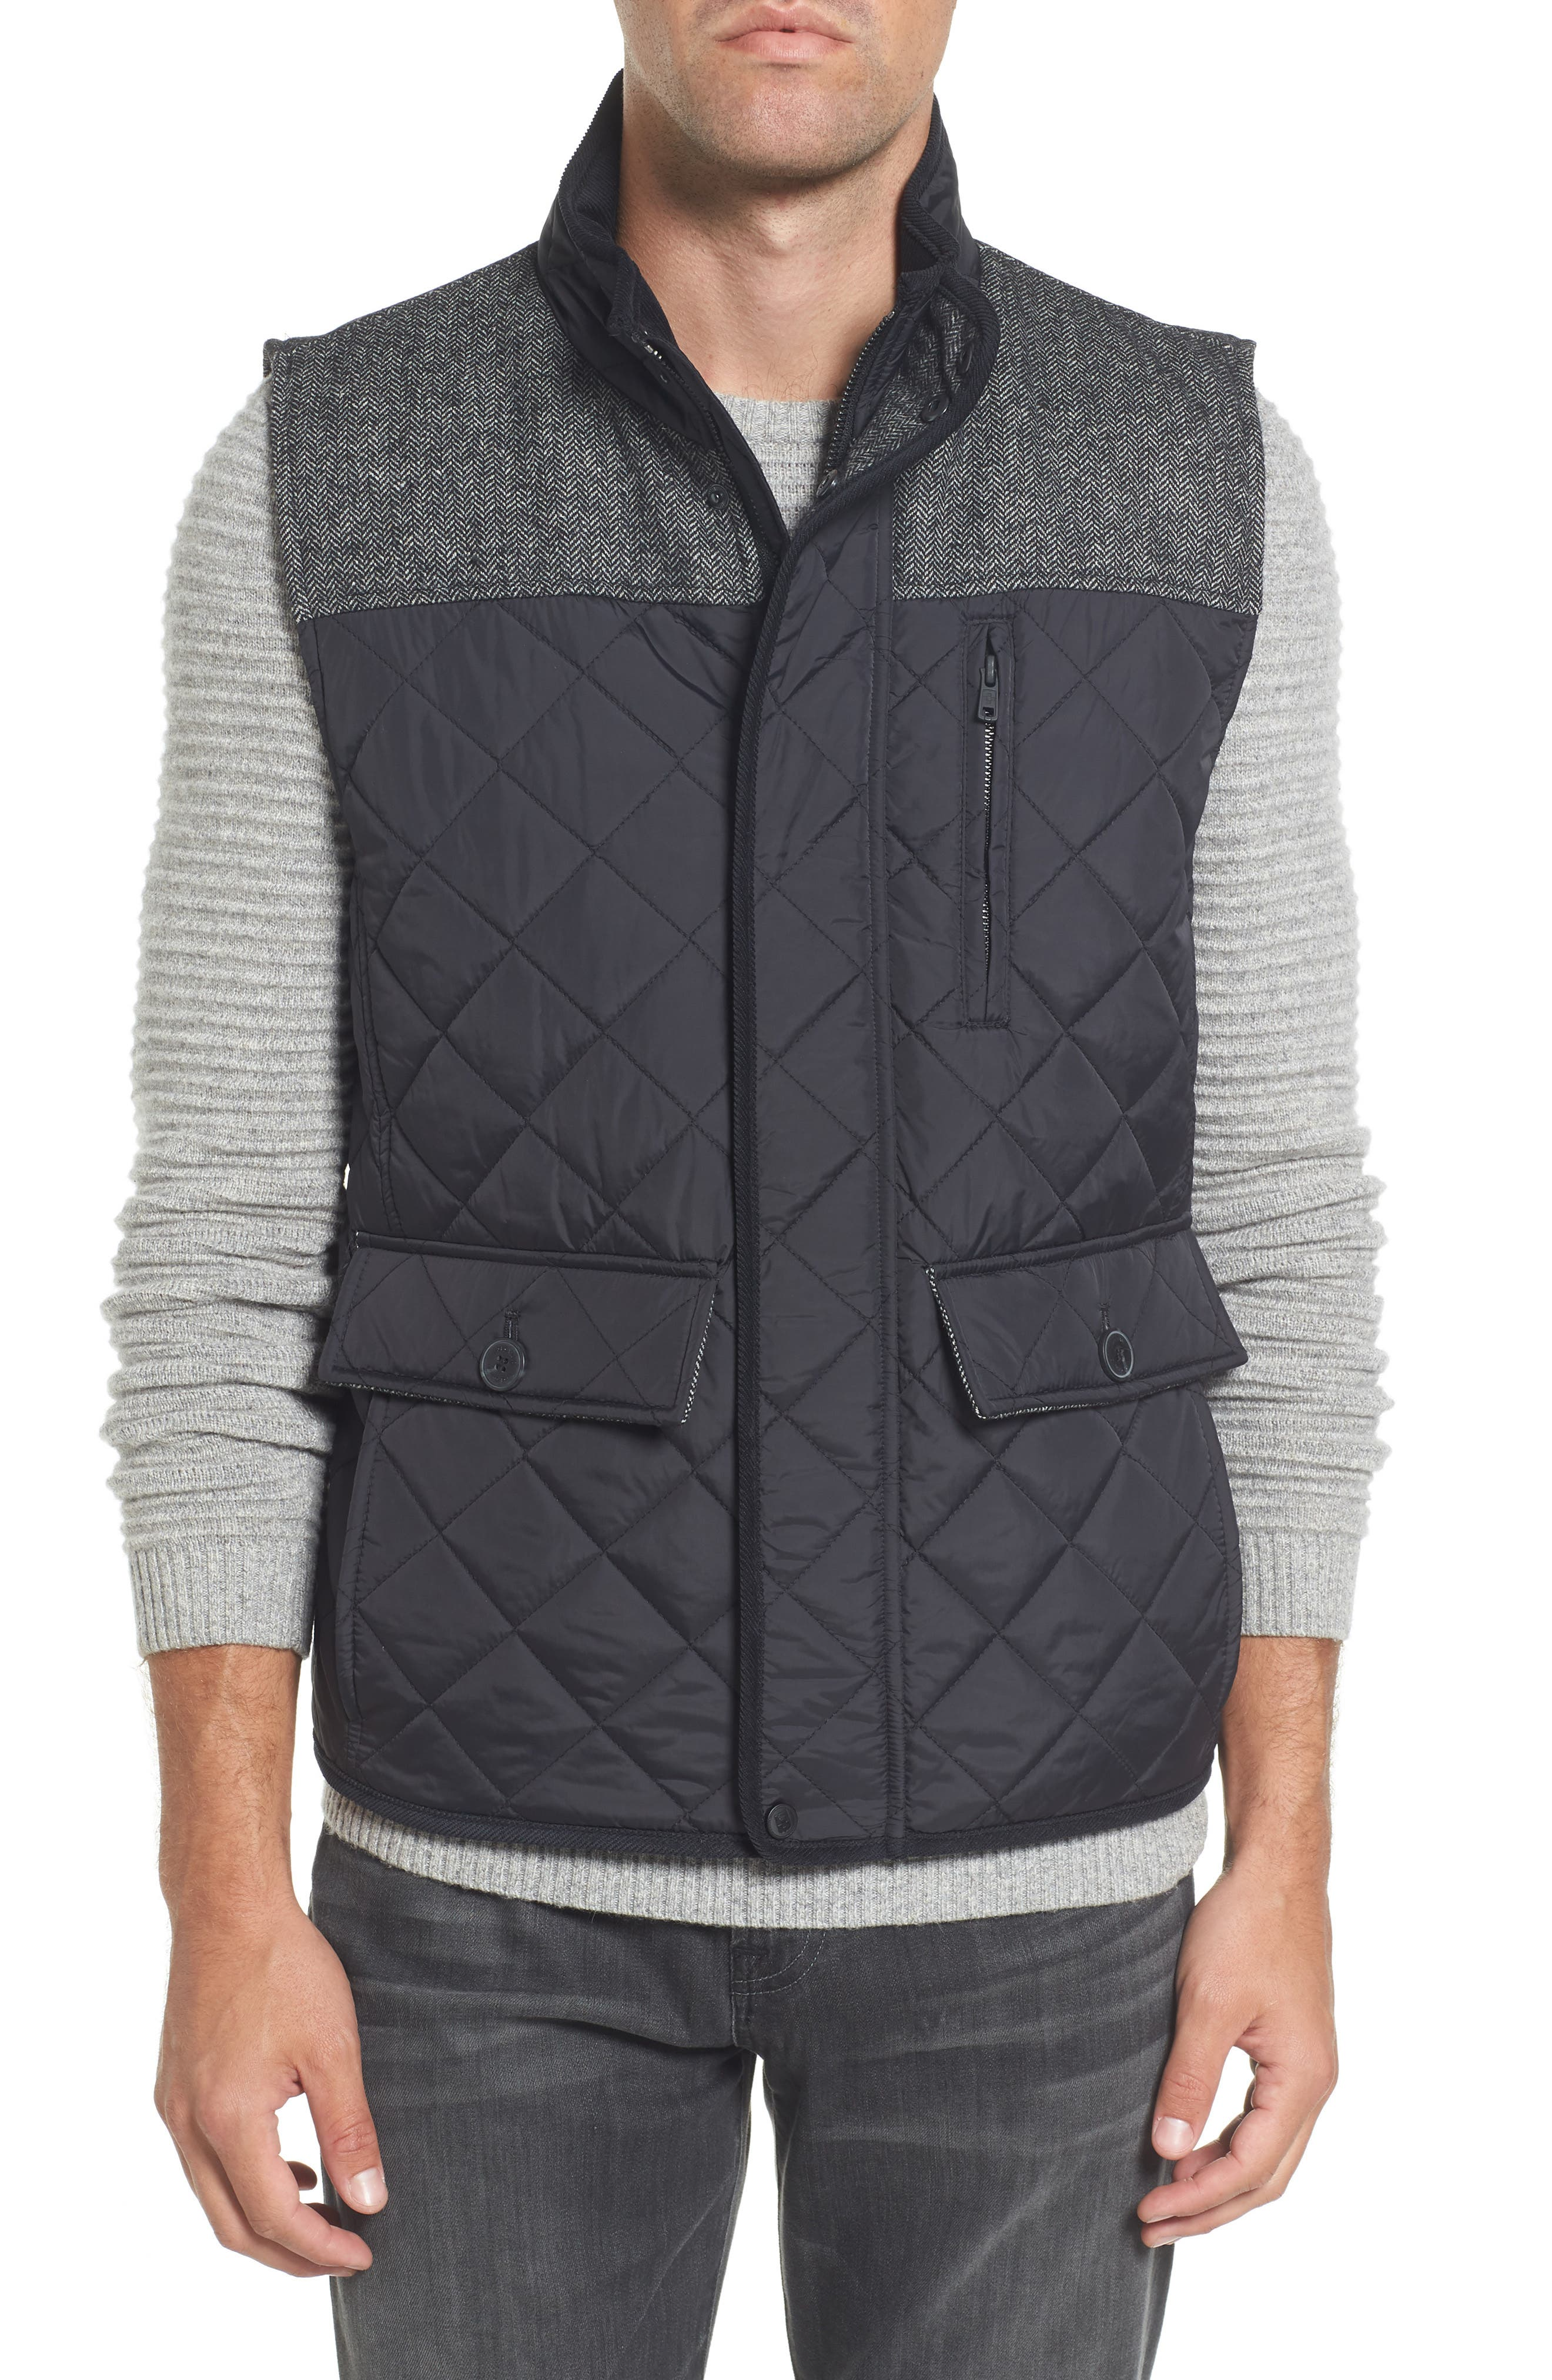 Vince Camuto Quilted Vest, Black